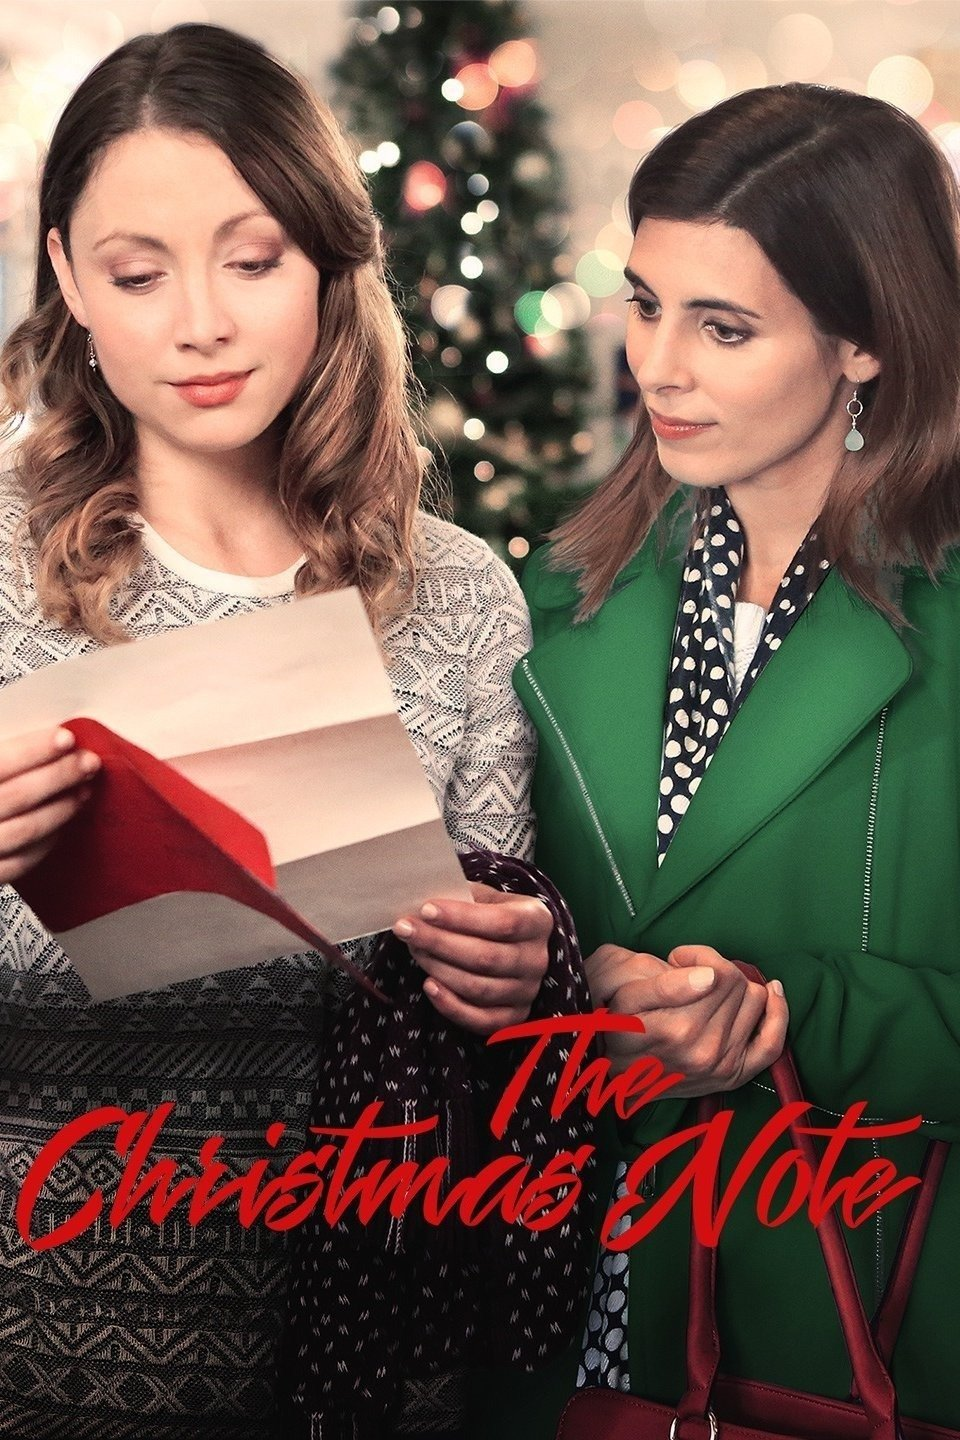 The Christmas Note (2015)